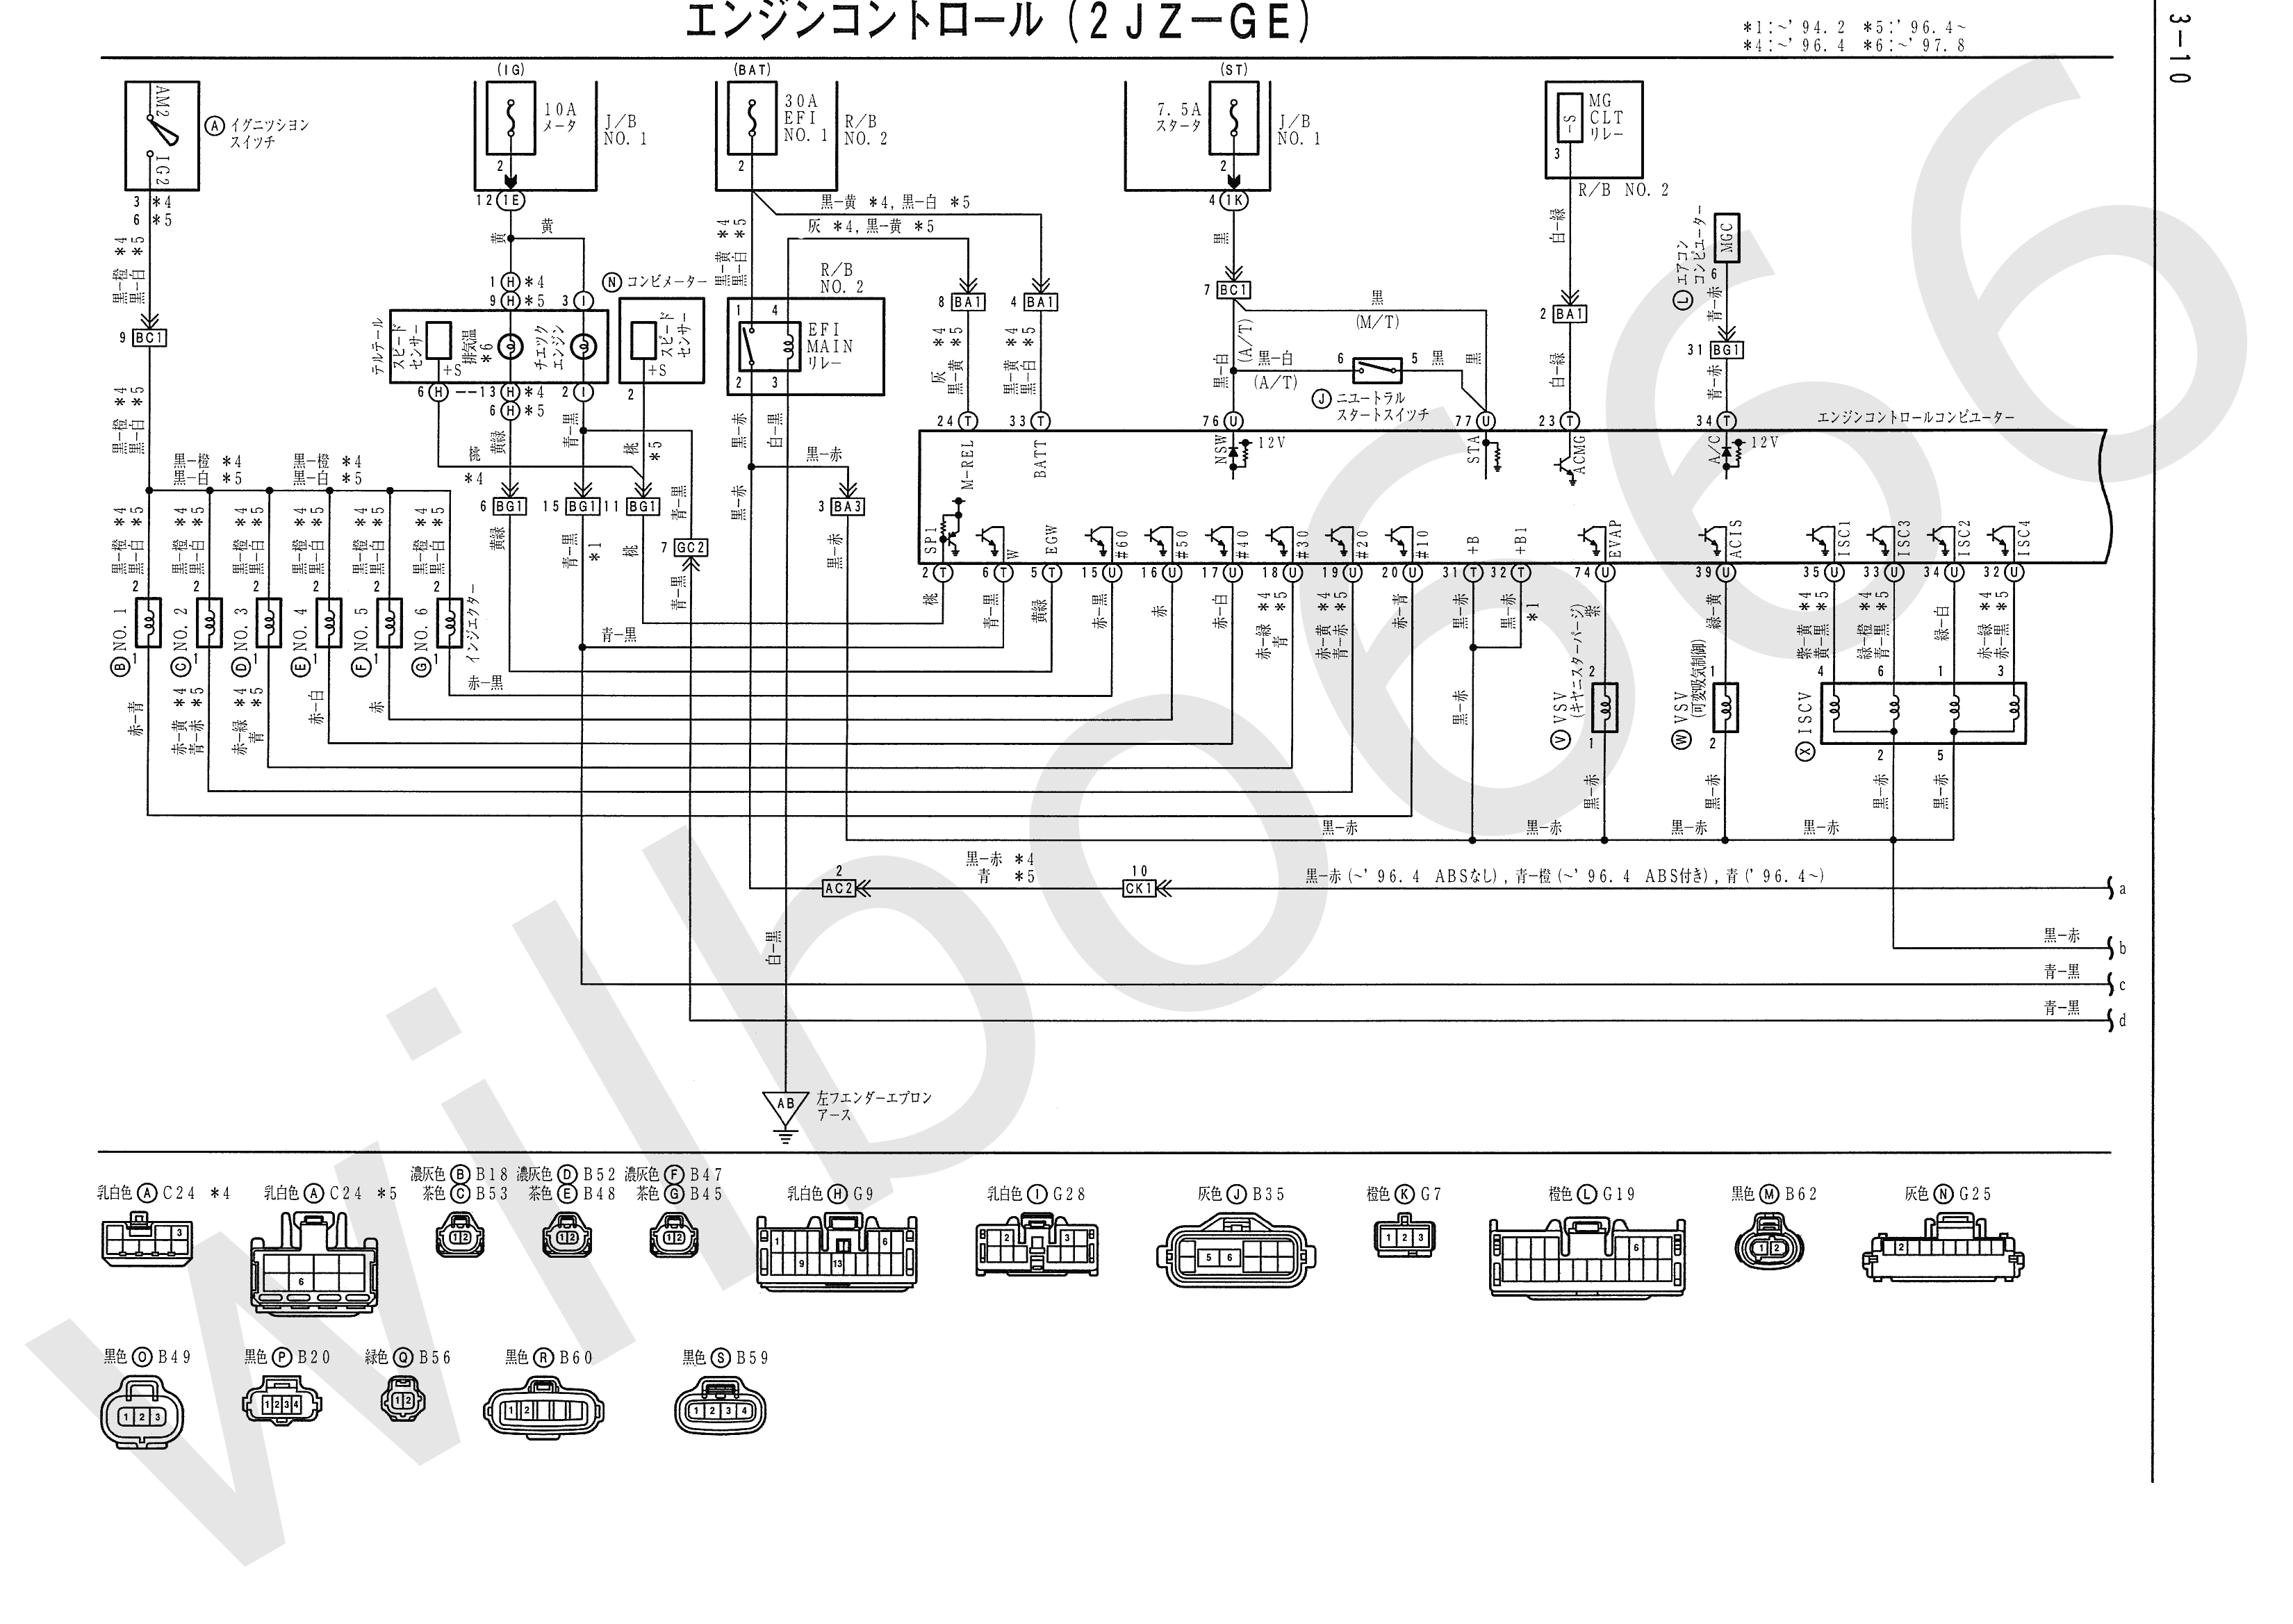 JZA80 Electrical Wiring Diagram 6742505 3 10 wilbo666 2jz ge jza80 supra engine wiring wiring diagram for economy 10 meter at fashall.co